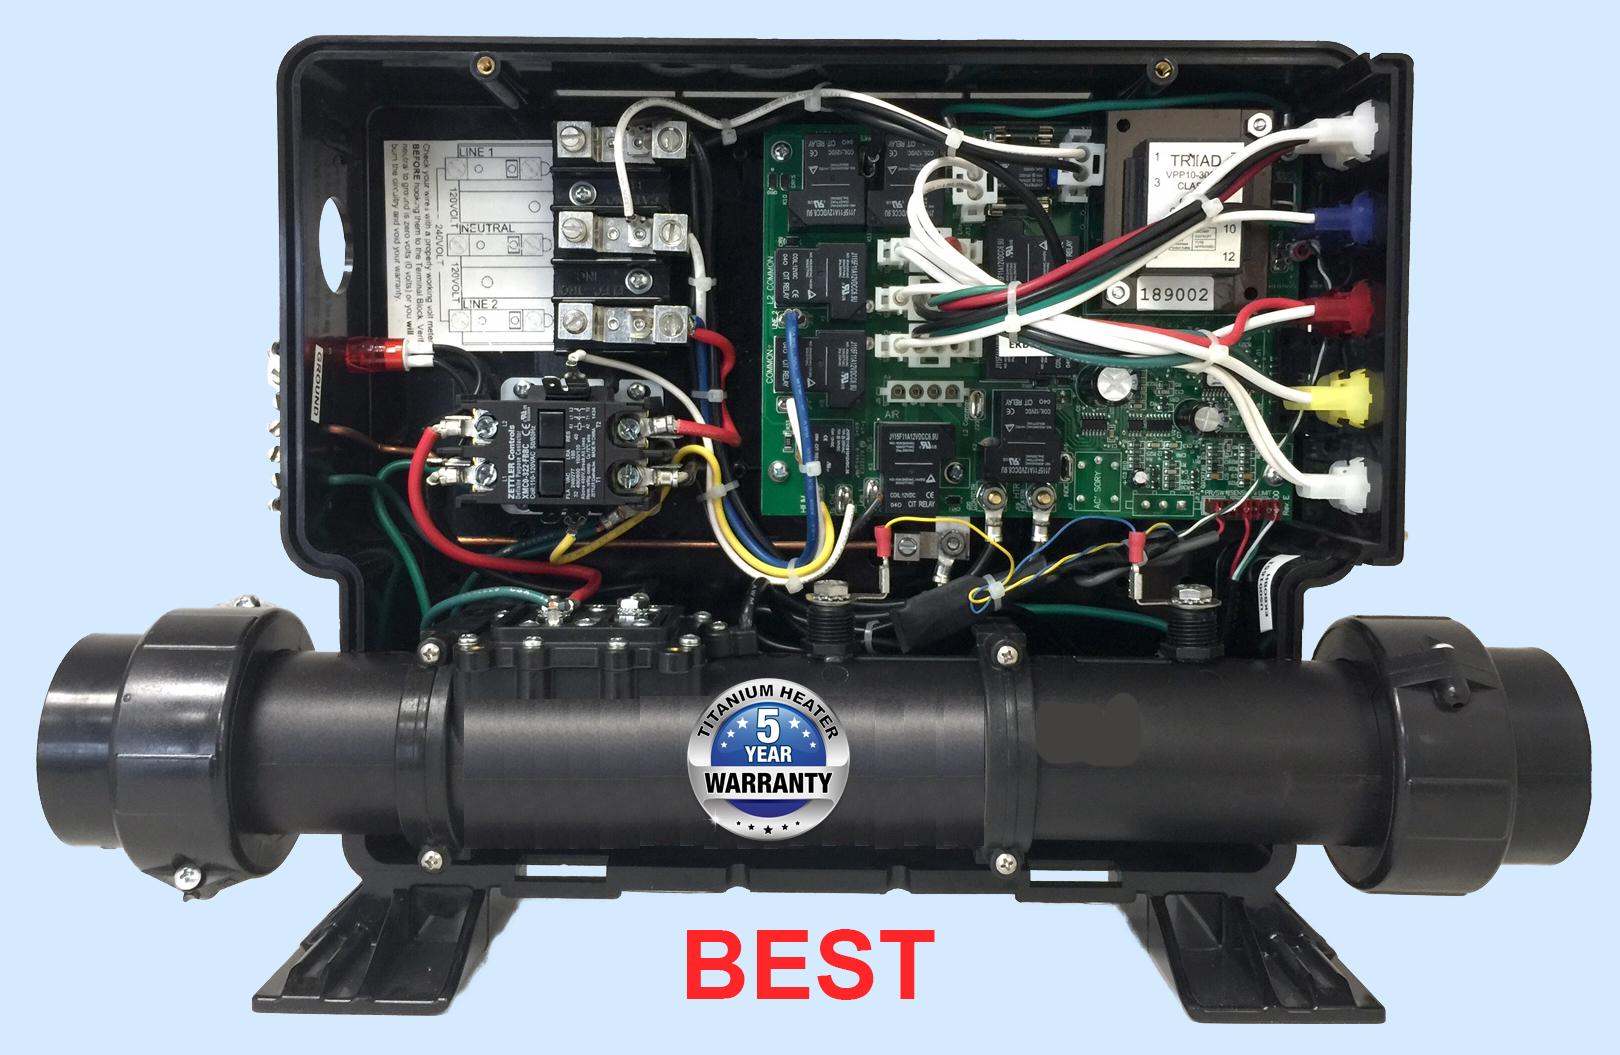 USC_CosmoHeat_Warranty_Open_best replacement classact spas heater for $19 95 free freight mfg jacuzzi wiring diagram at eliteediting.co